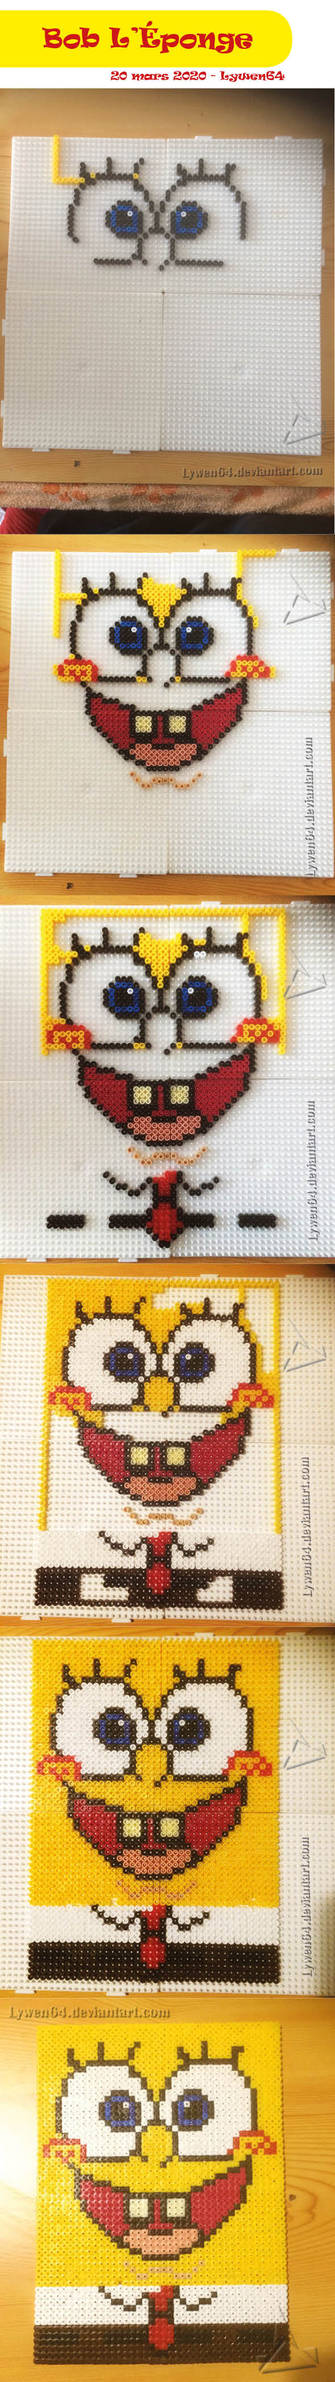 Bob l'eponge Hama Beads - Step by step